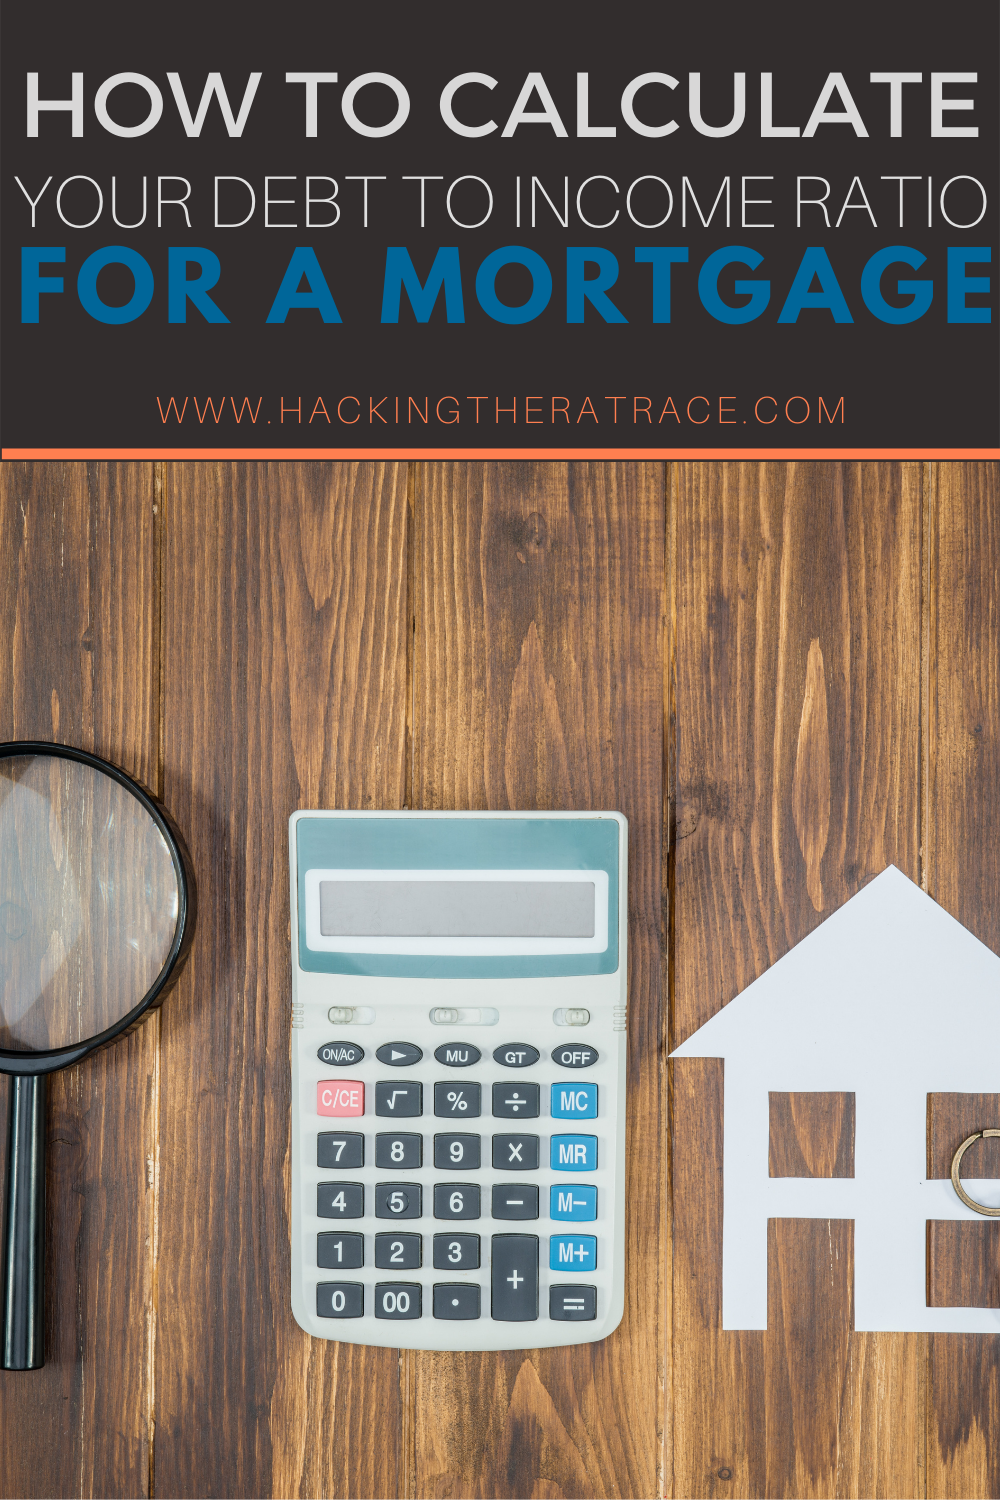 How To Calculate Debt To Income Ratio For A Mortgage Loan Debt To Income Ratio Mortgage Loans Mortgage